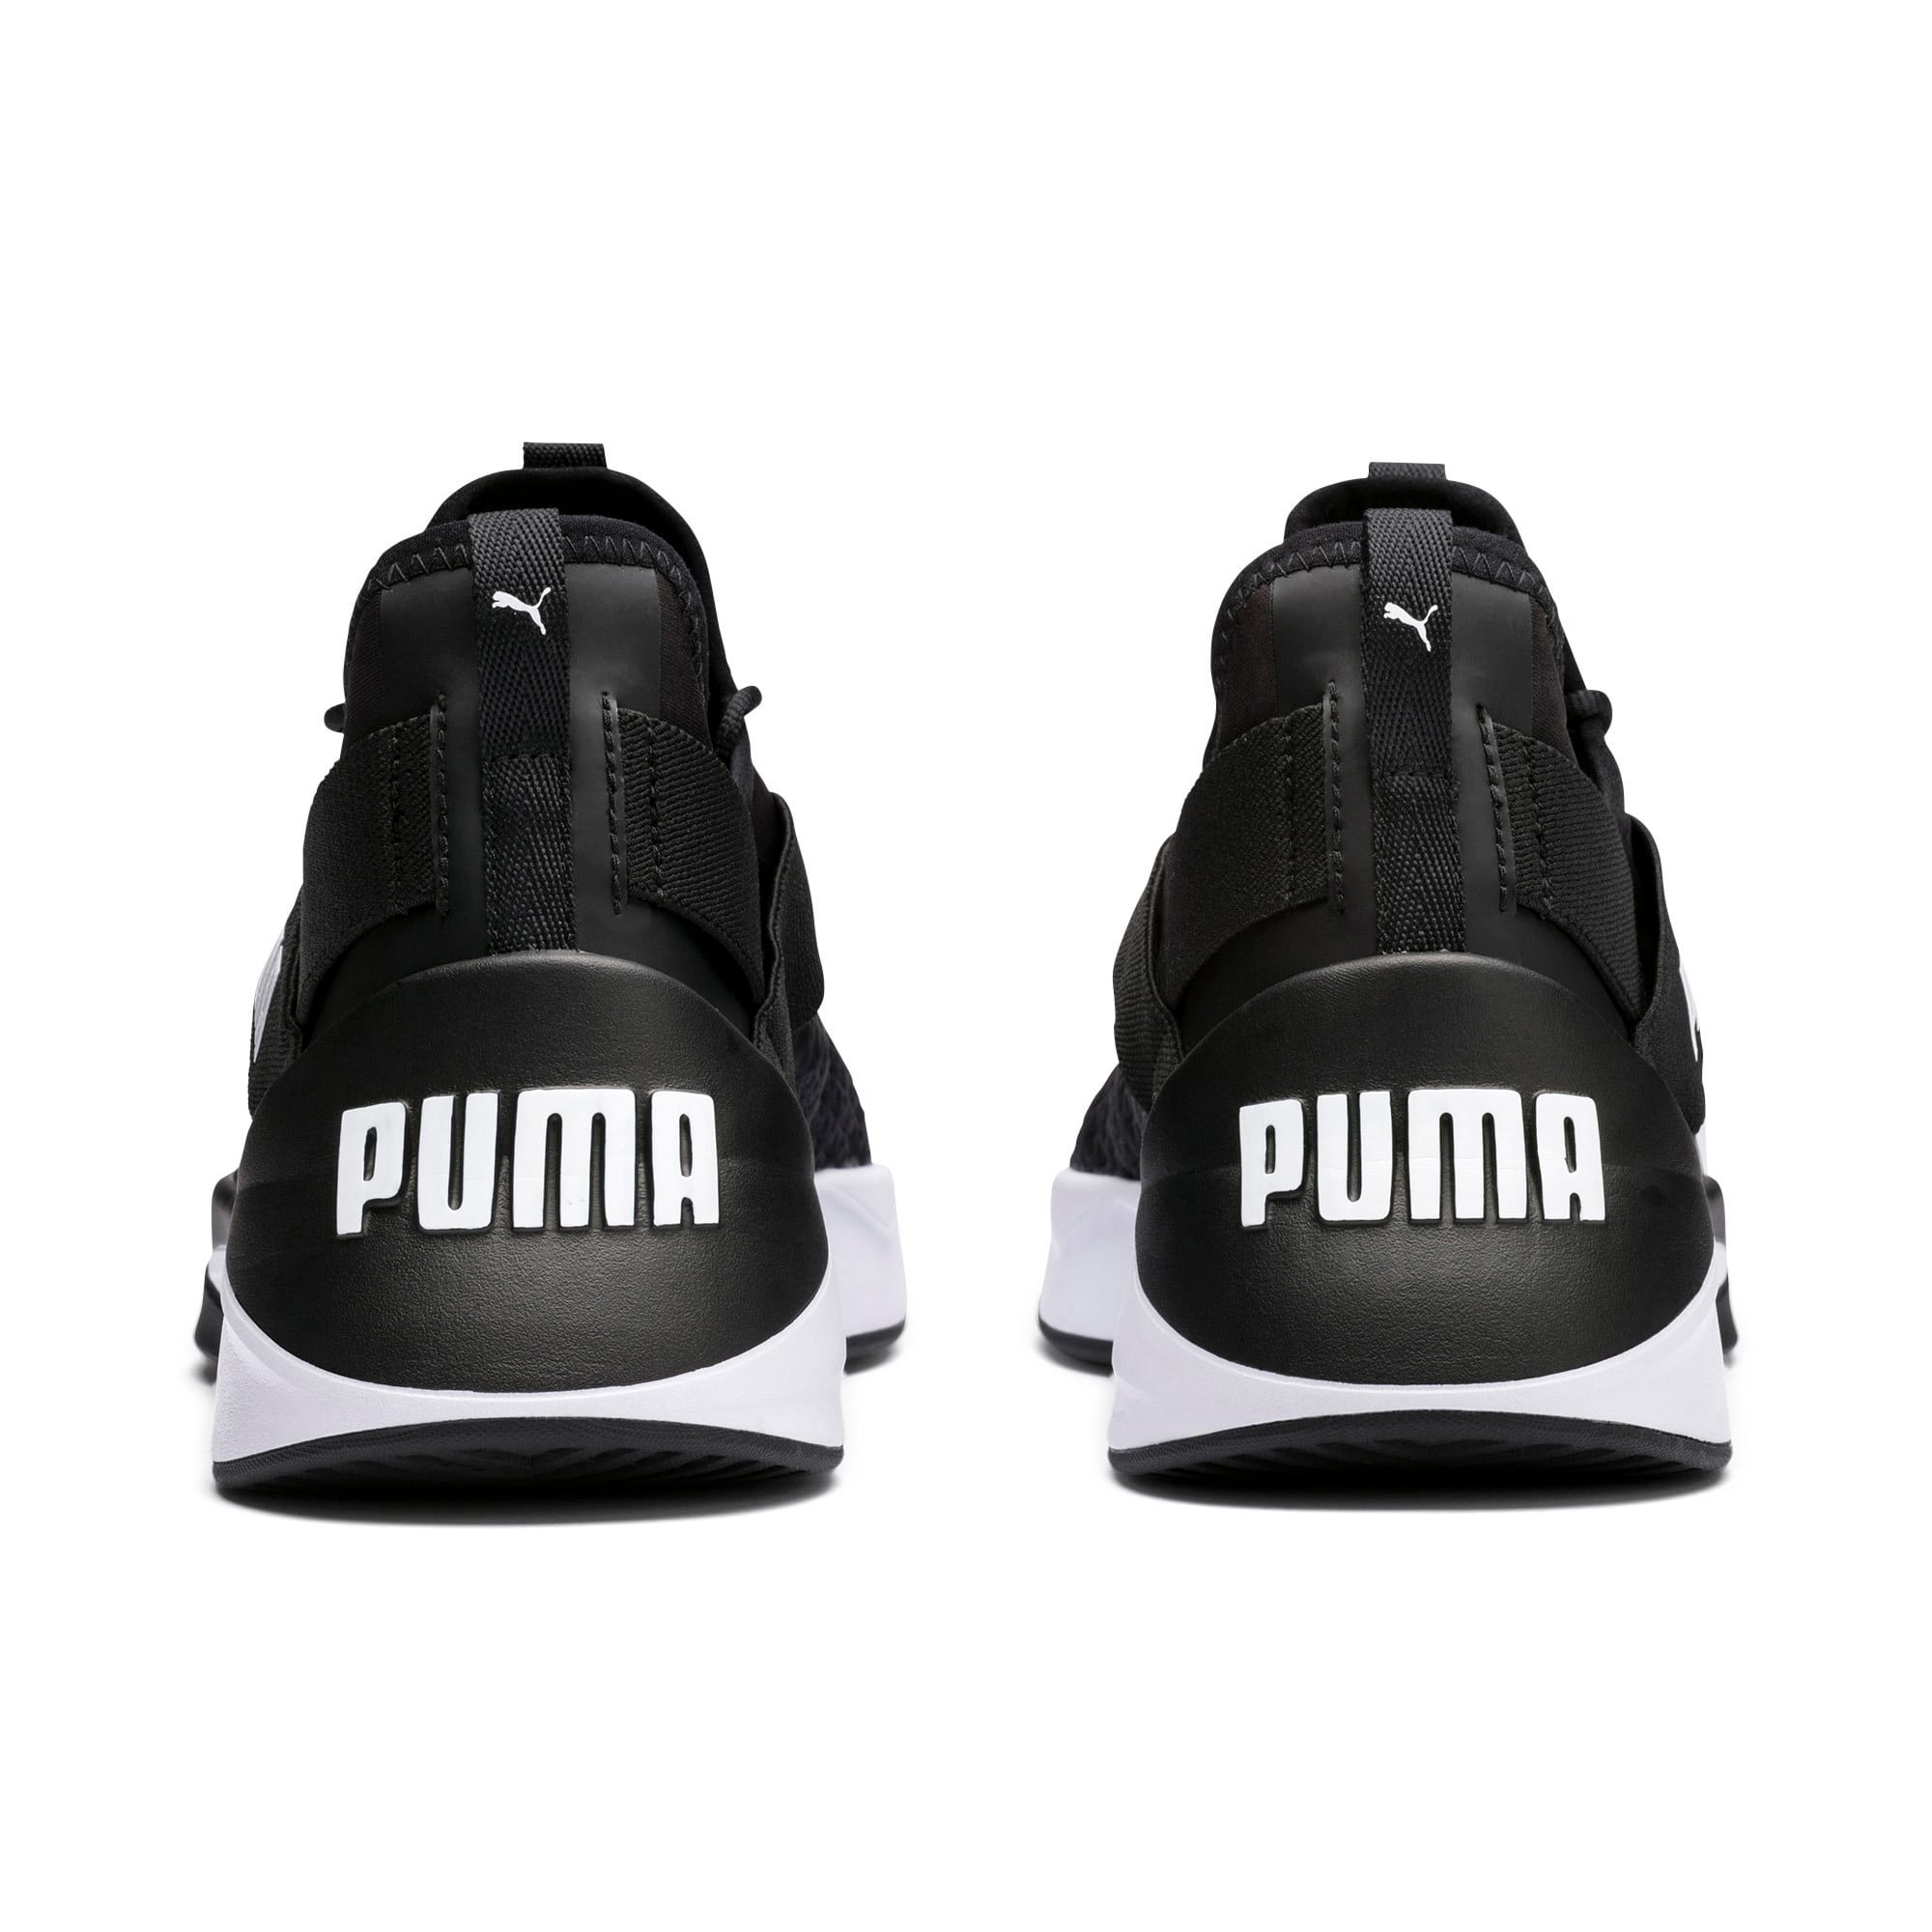 Thumbnail 4 of Jaab XT sneakers voor heren, Puma Black-Puma White, medium